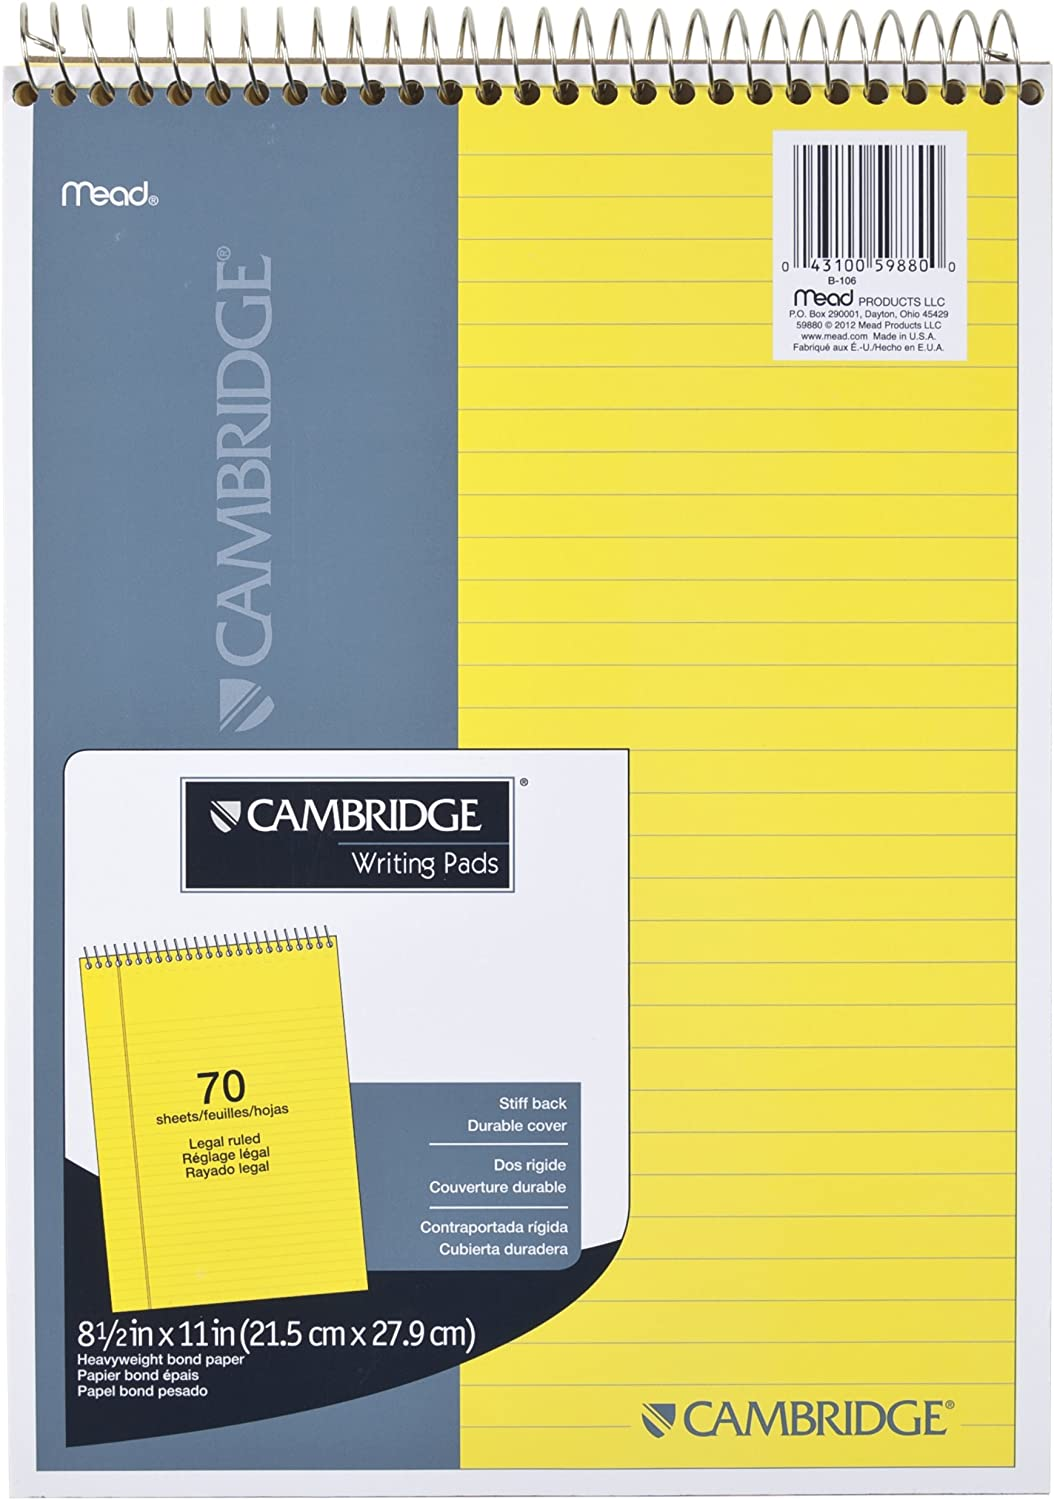 "Mead Legal Pad, Top Spiral Bound, Wide Ruled Paper, 70 Sheets, 8-1/2"" x 11"", Yellow Cyan (MEA59880)"